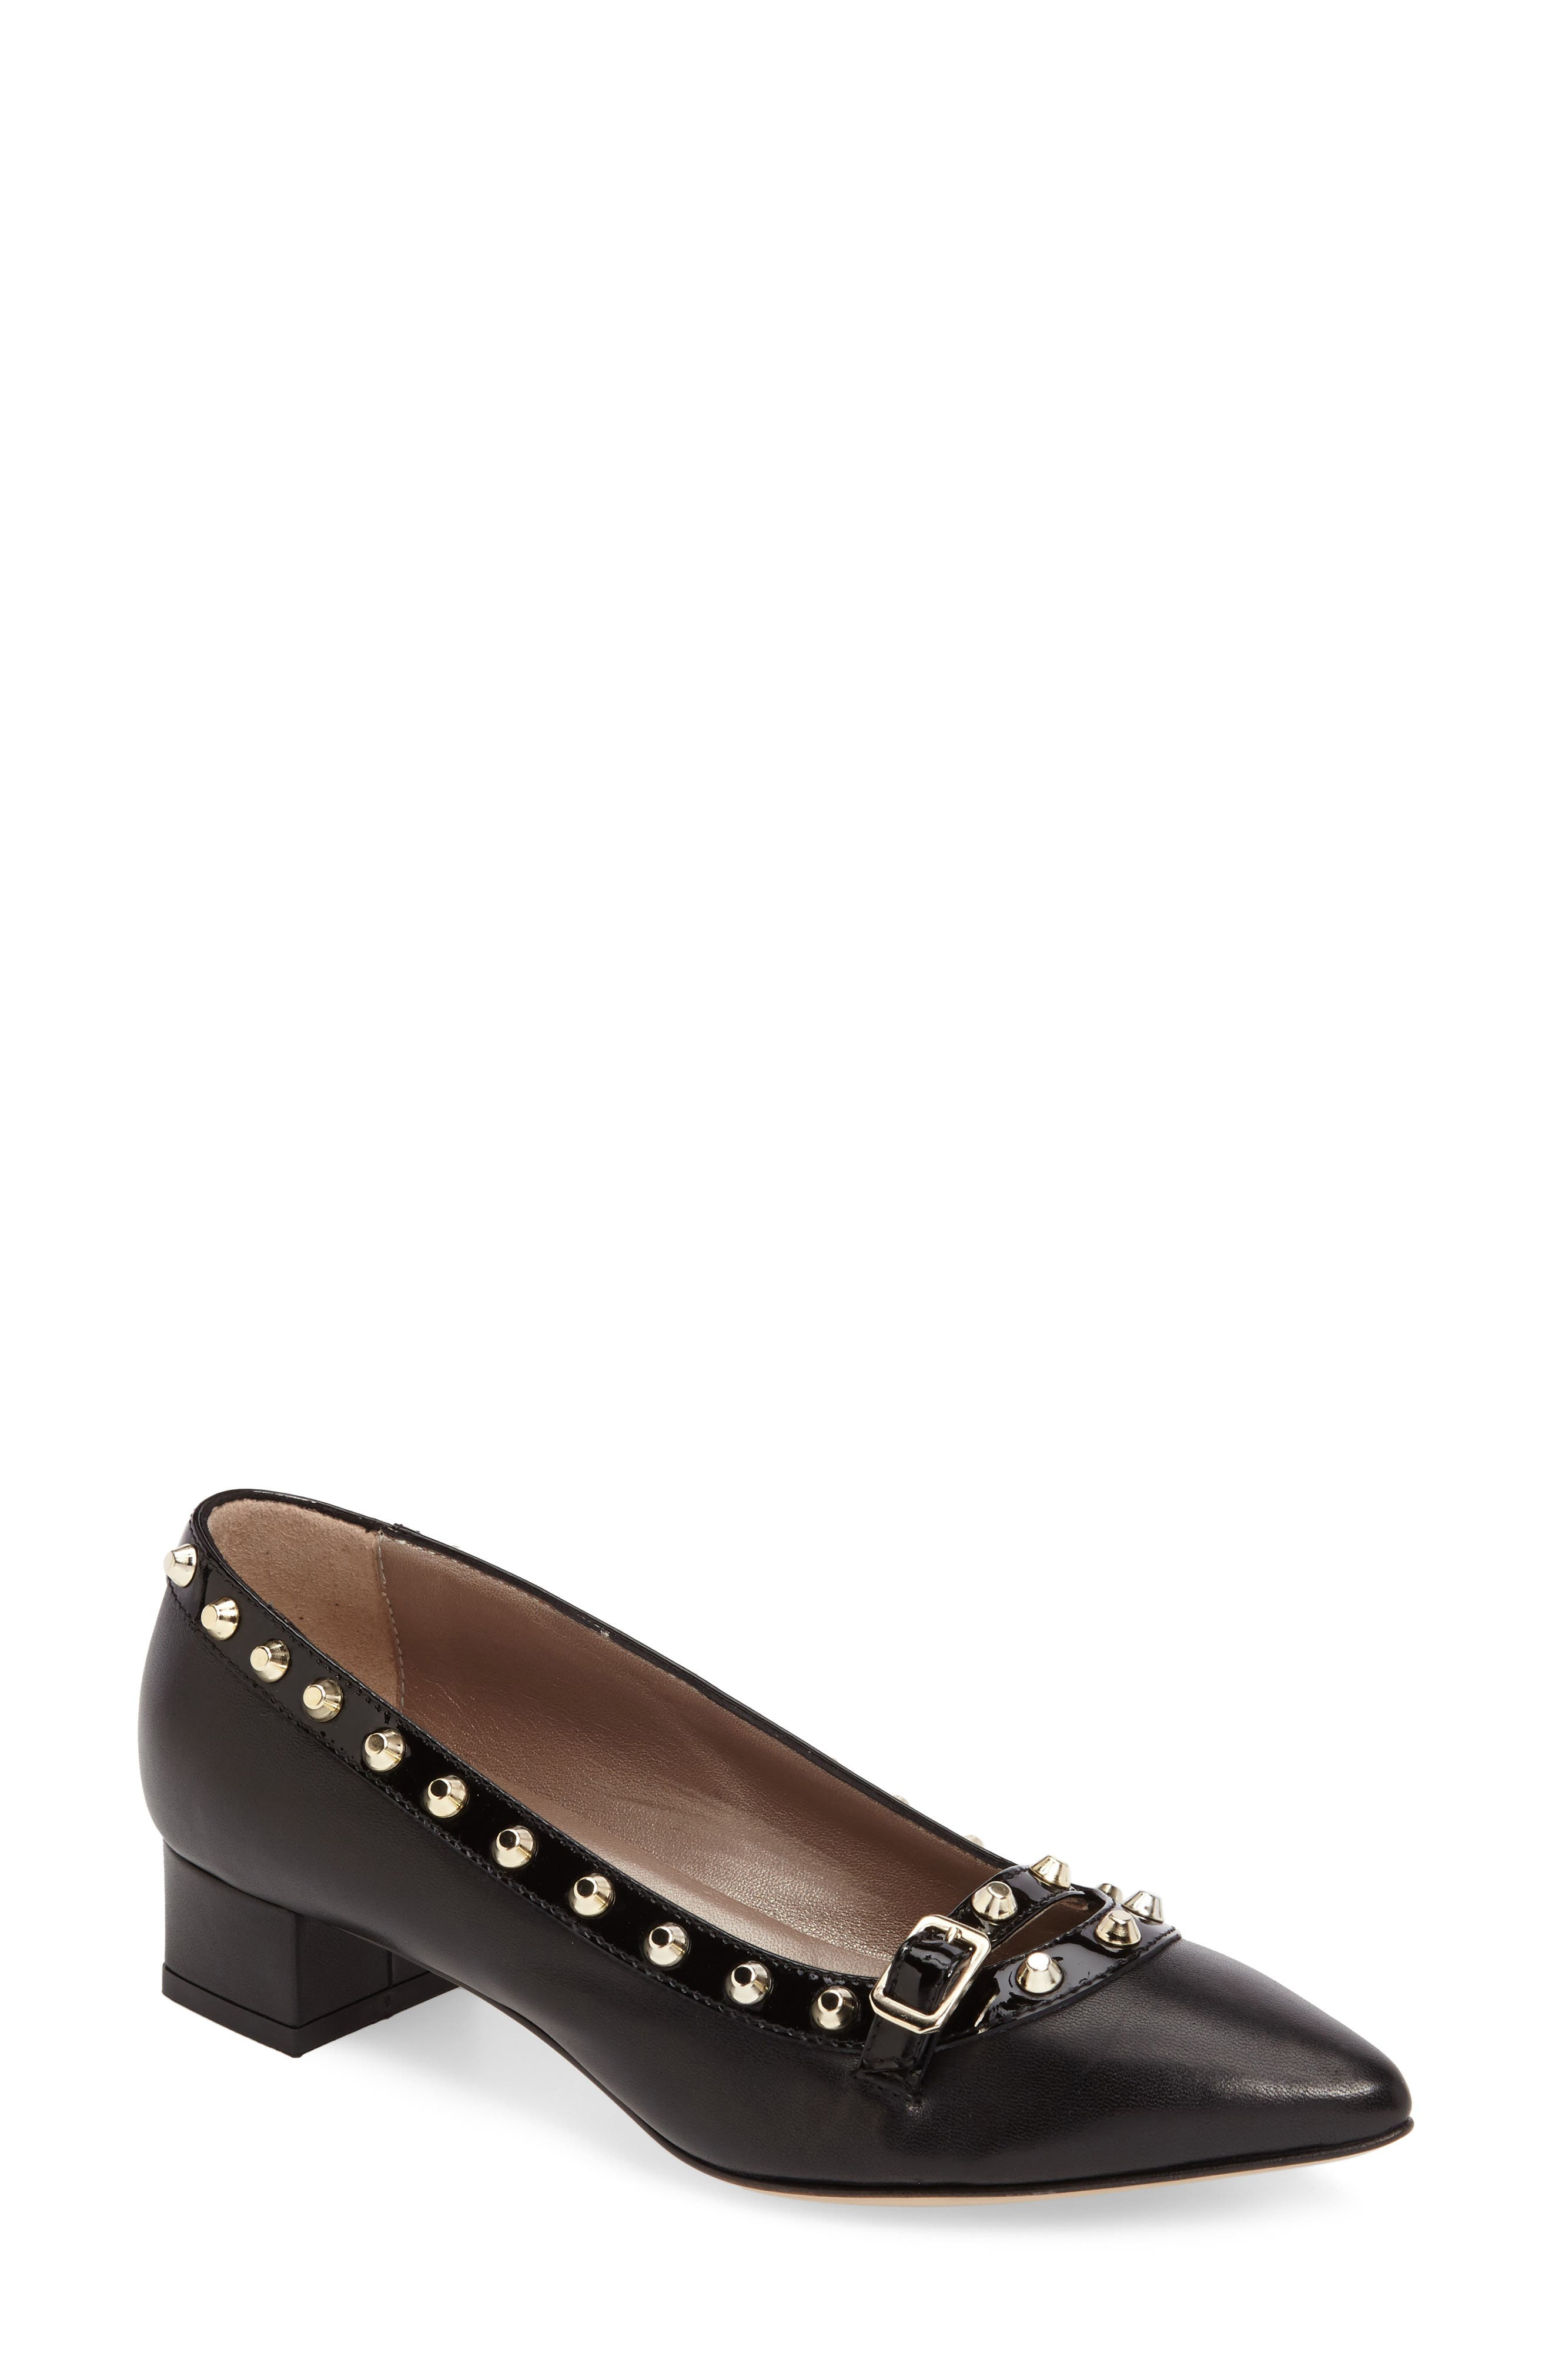 Studded Mary Jane Pump,                         Main,                         color, Black Leather